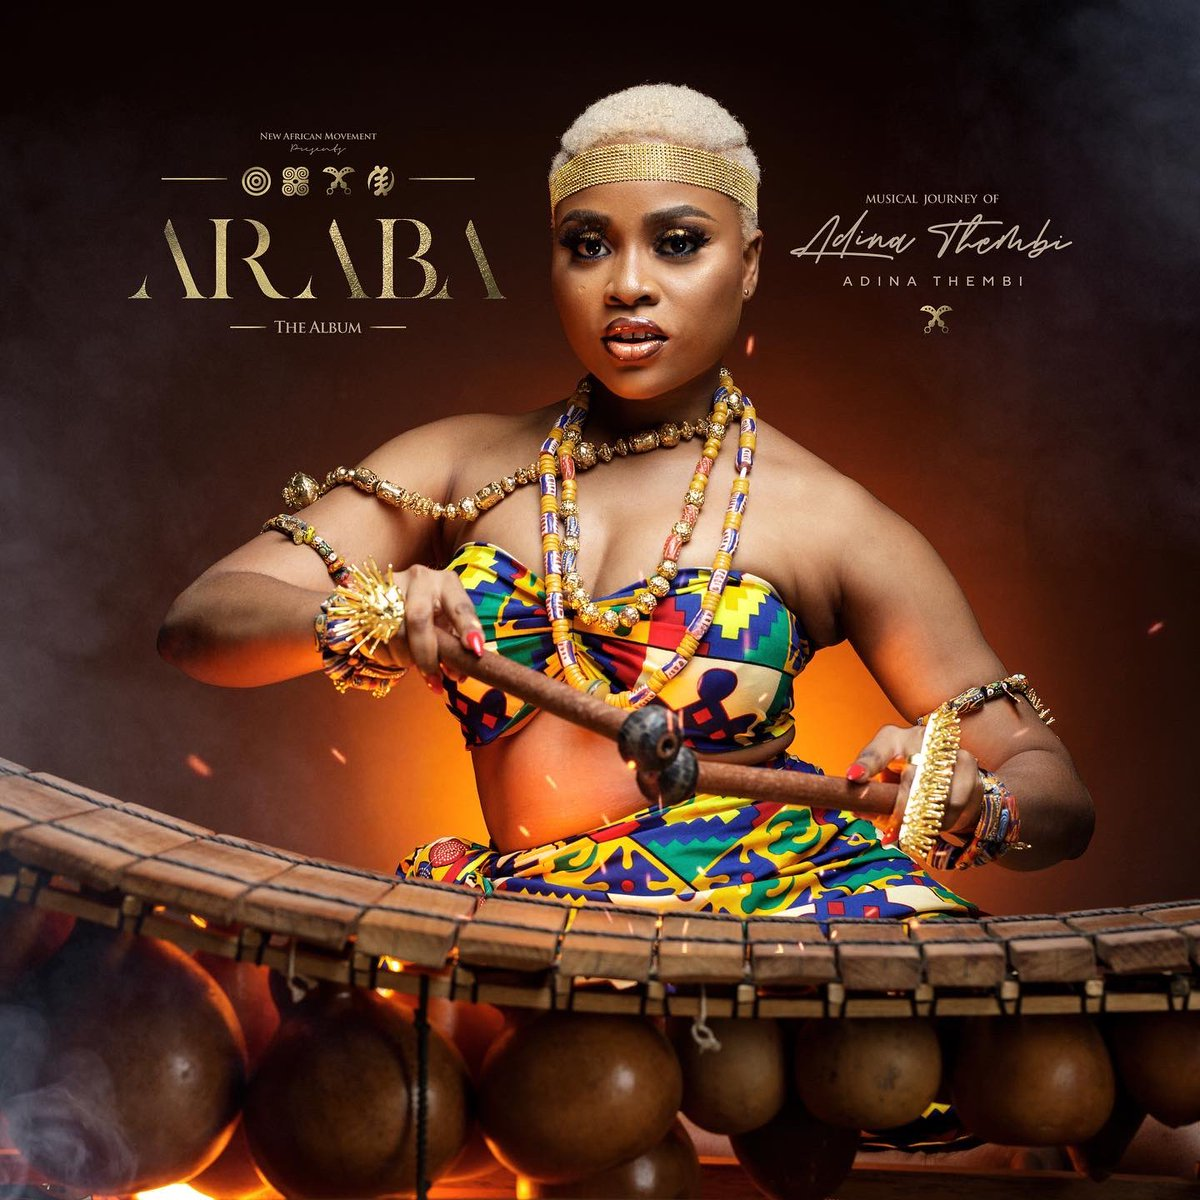 Adina – Araba (Full Album)